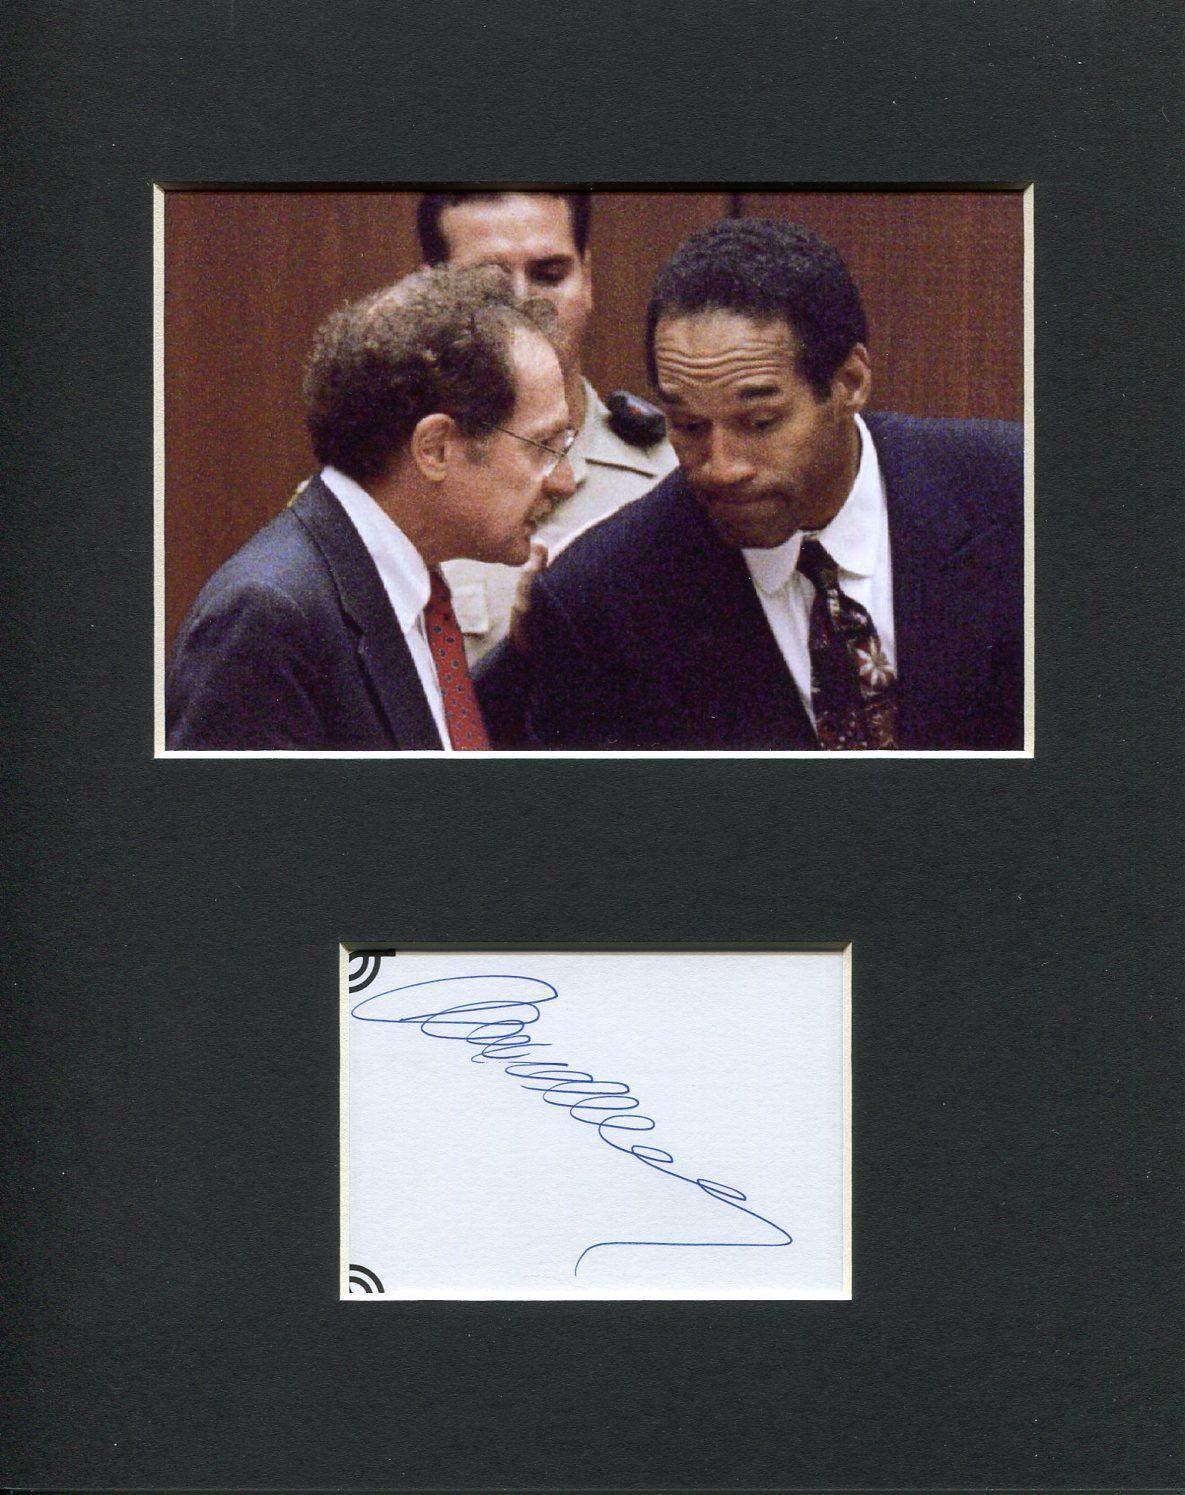 Alan Dershowitz Famous OJ Simpson Lawyer Rare Signed Autograph Photo Display HollywoodMemorabilia